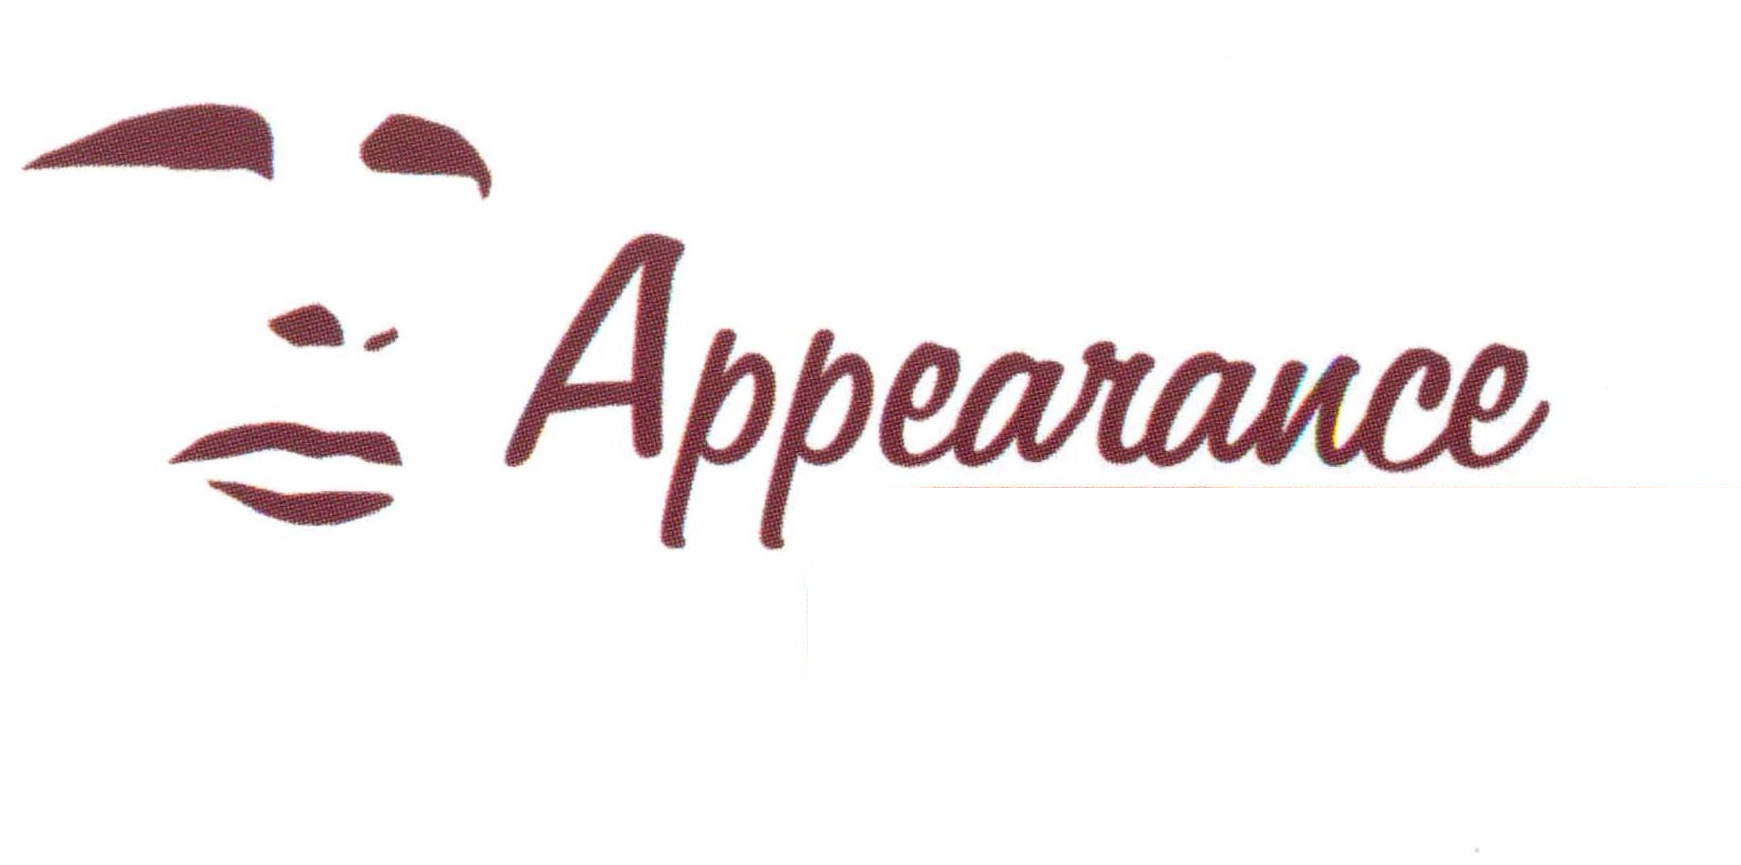 Part 1: Appearance Description